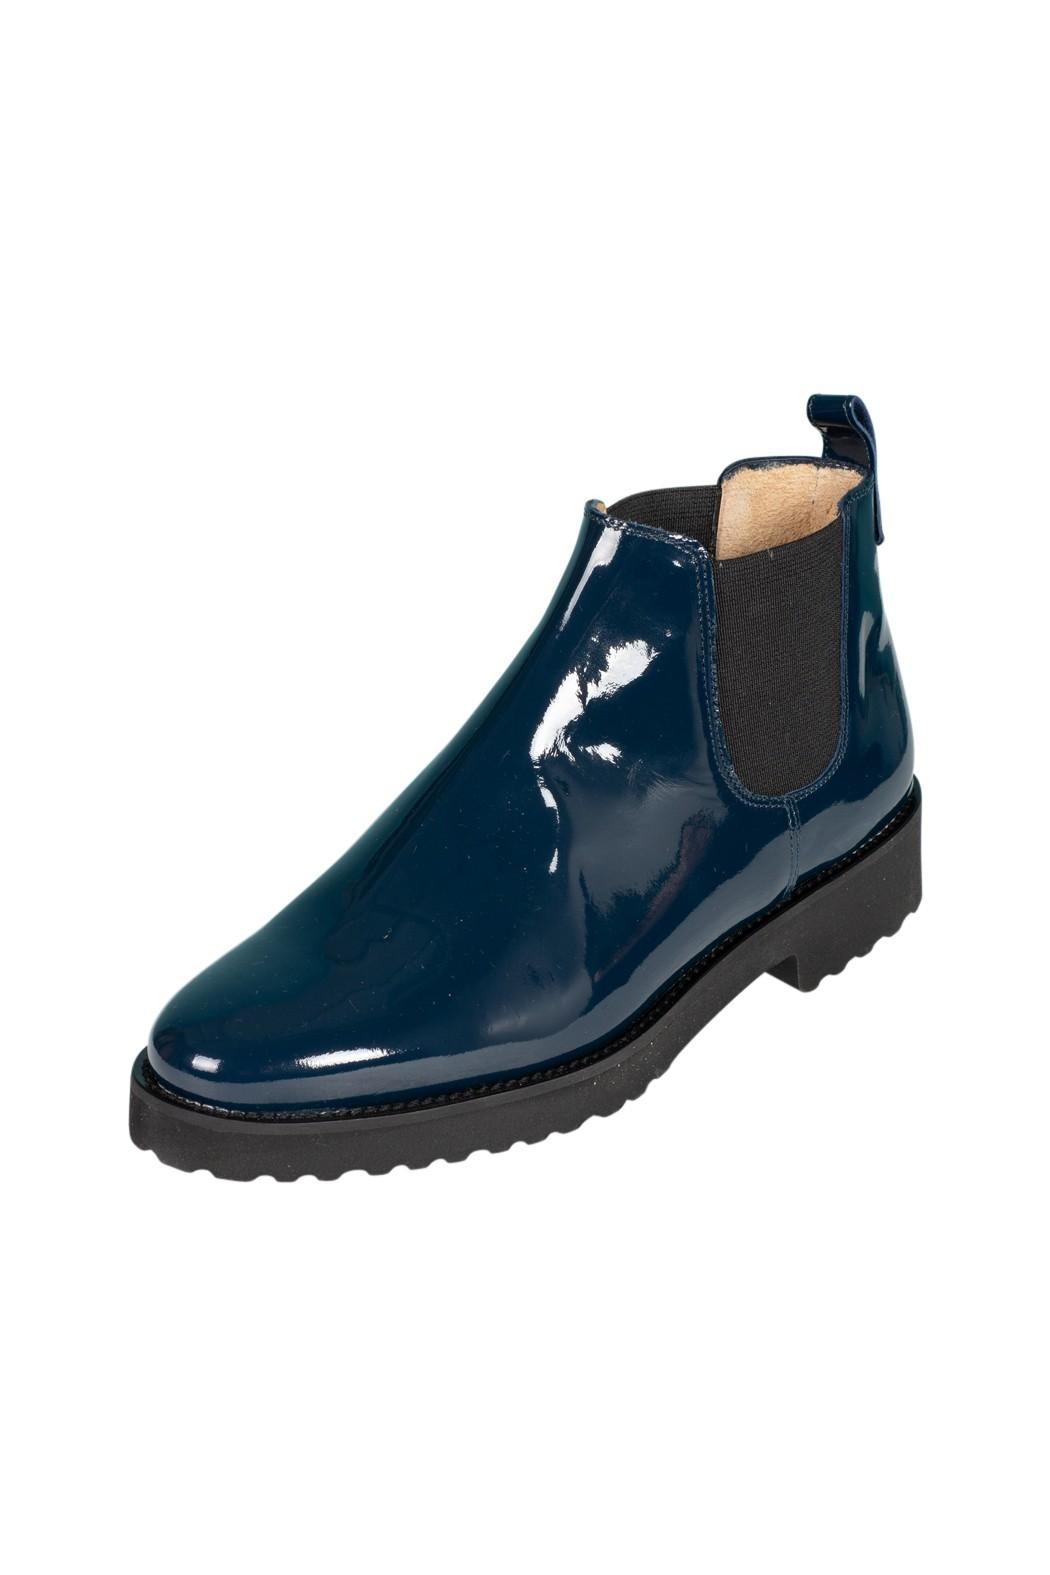 Pascucci Blue Patent-Leather Ankle-Boots - Front Full Image